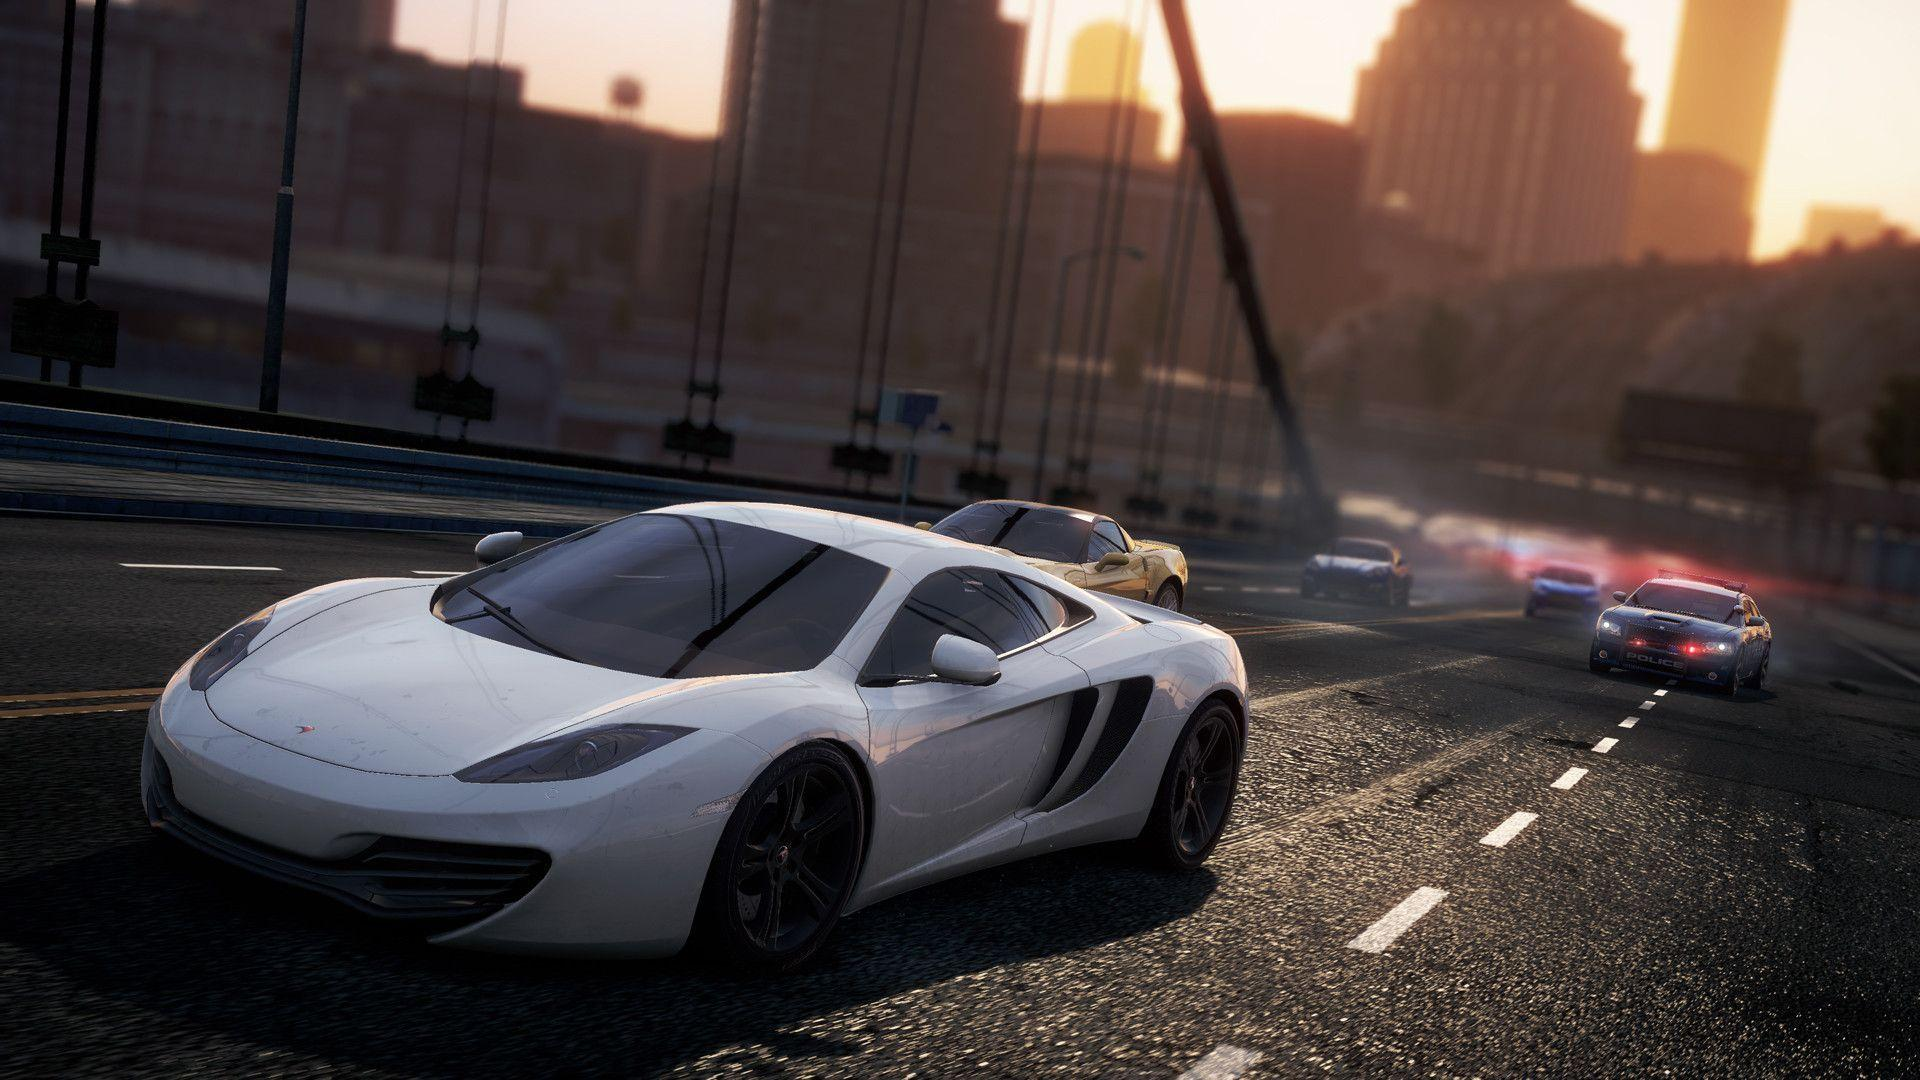 Need for speed most wanted wallpapers wallpaper cave for Need for speed wallpaper